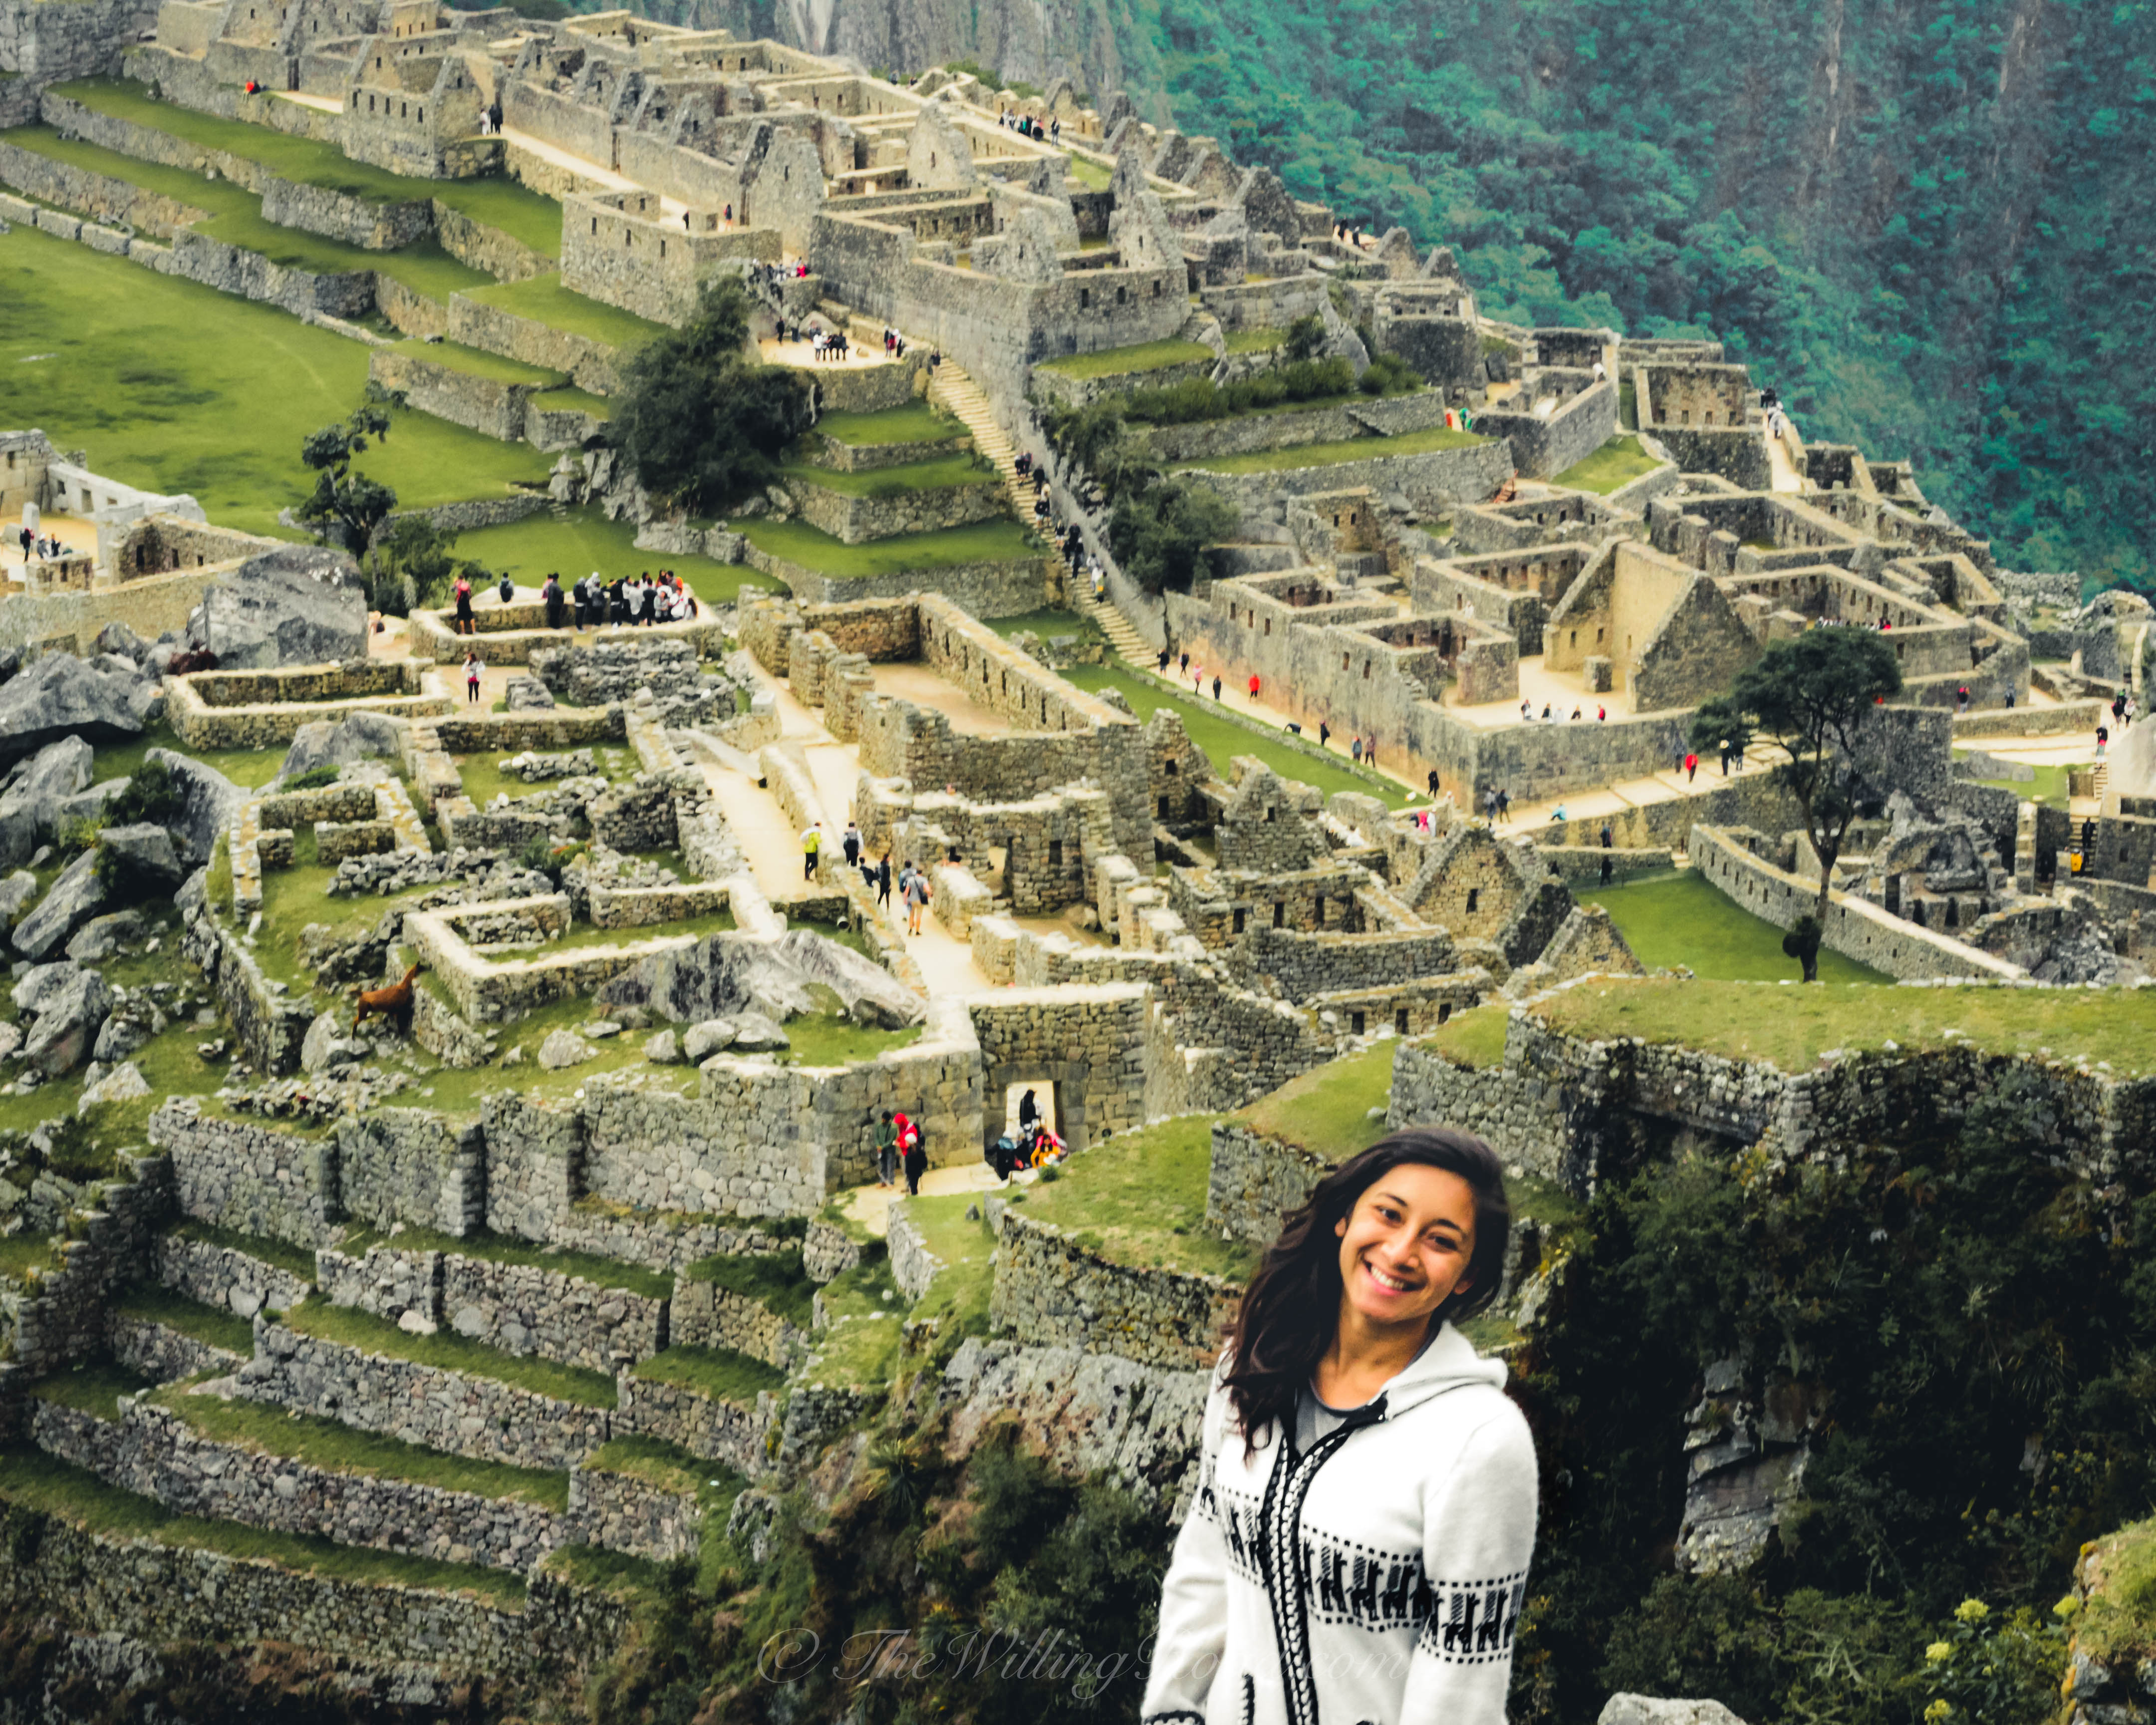 A Guide On How To Get To Machu Picchu For $1